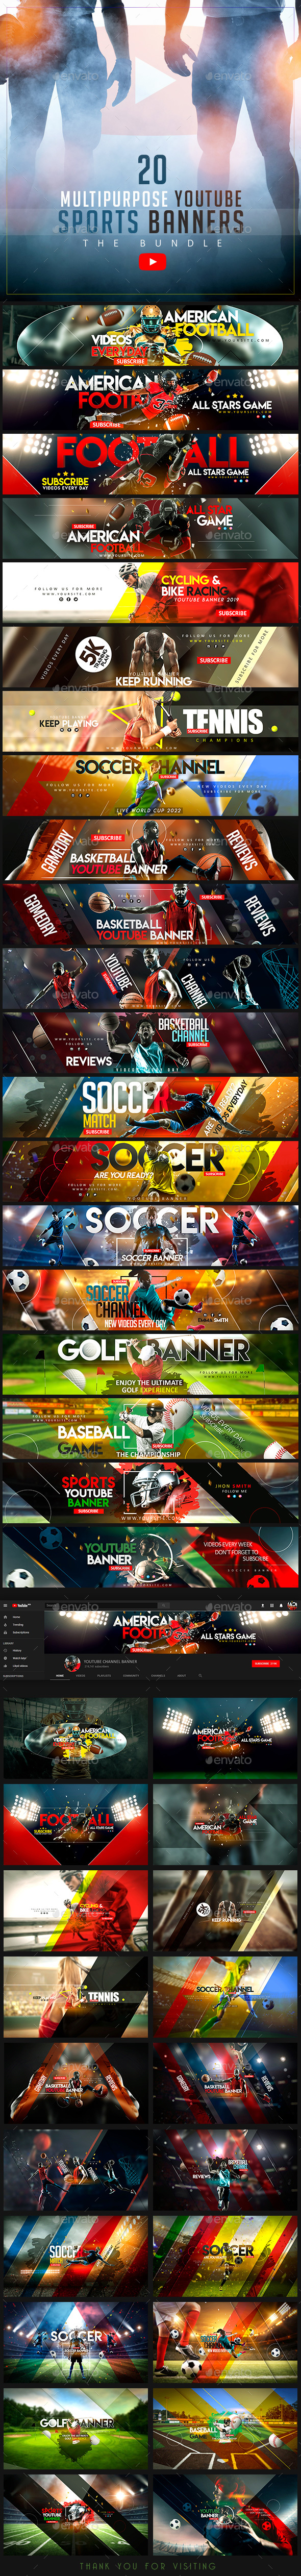 YouTube Sports Bundle - 20 Multipurpose Banners - YouTube Social Media